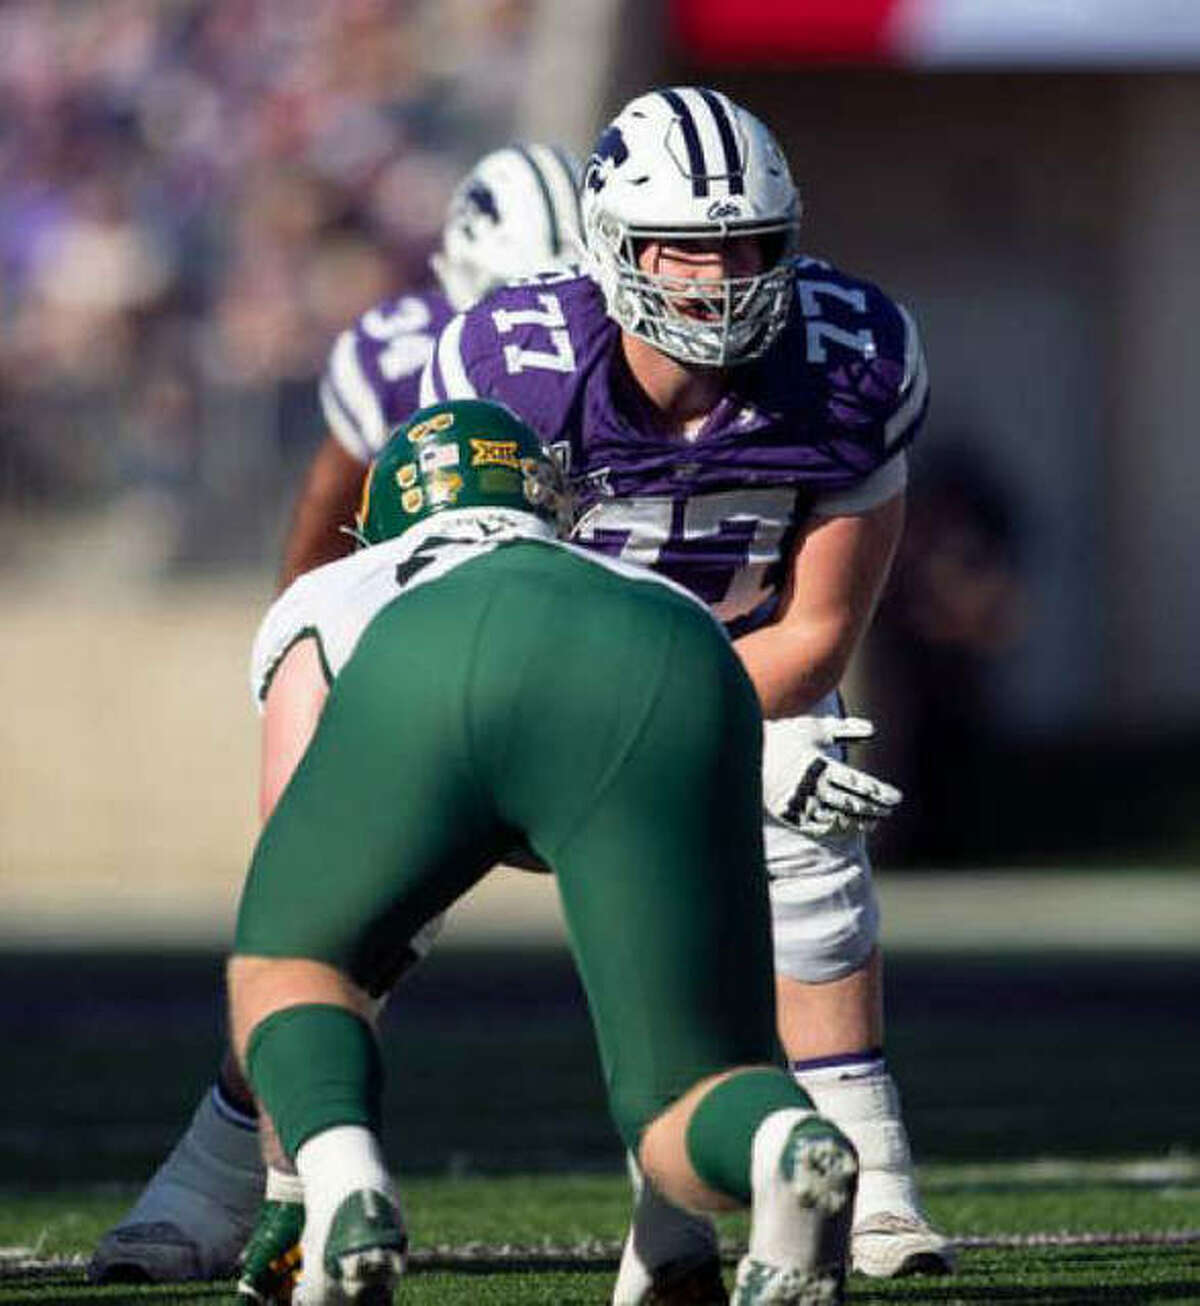 Kansas State offensive lineman Nick Kaltmayer, and Edwardsville High grad, prepares for a play during this past season.